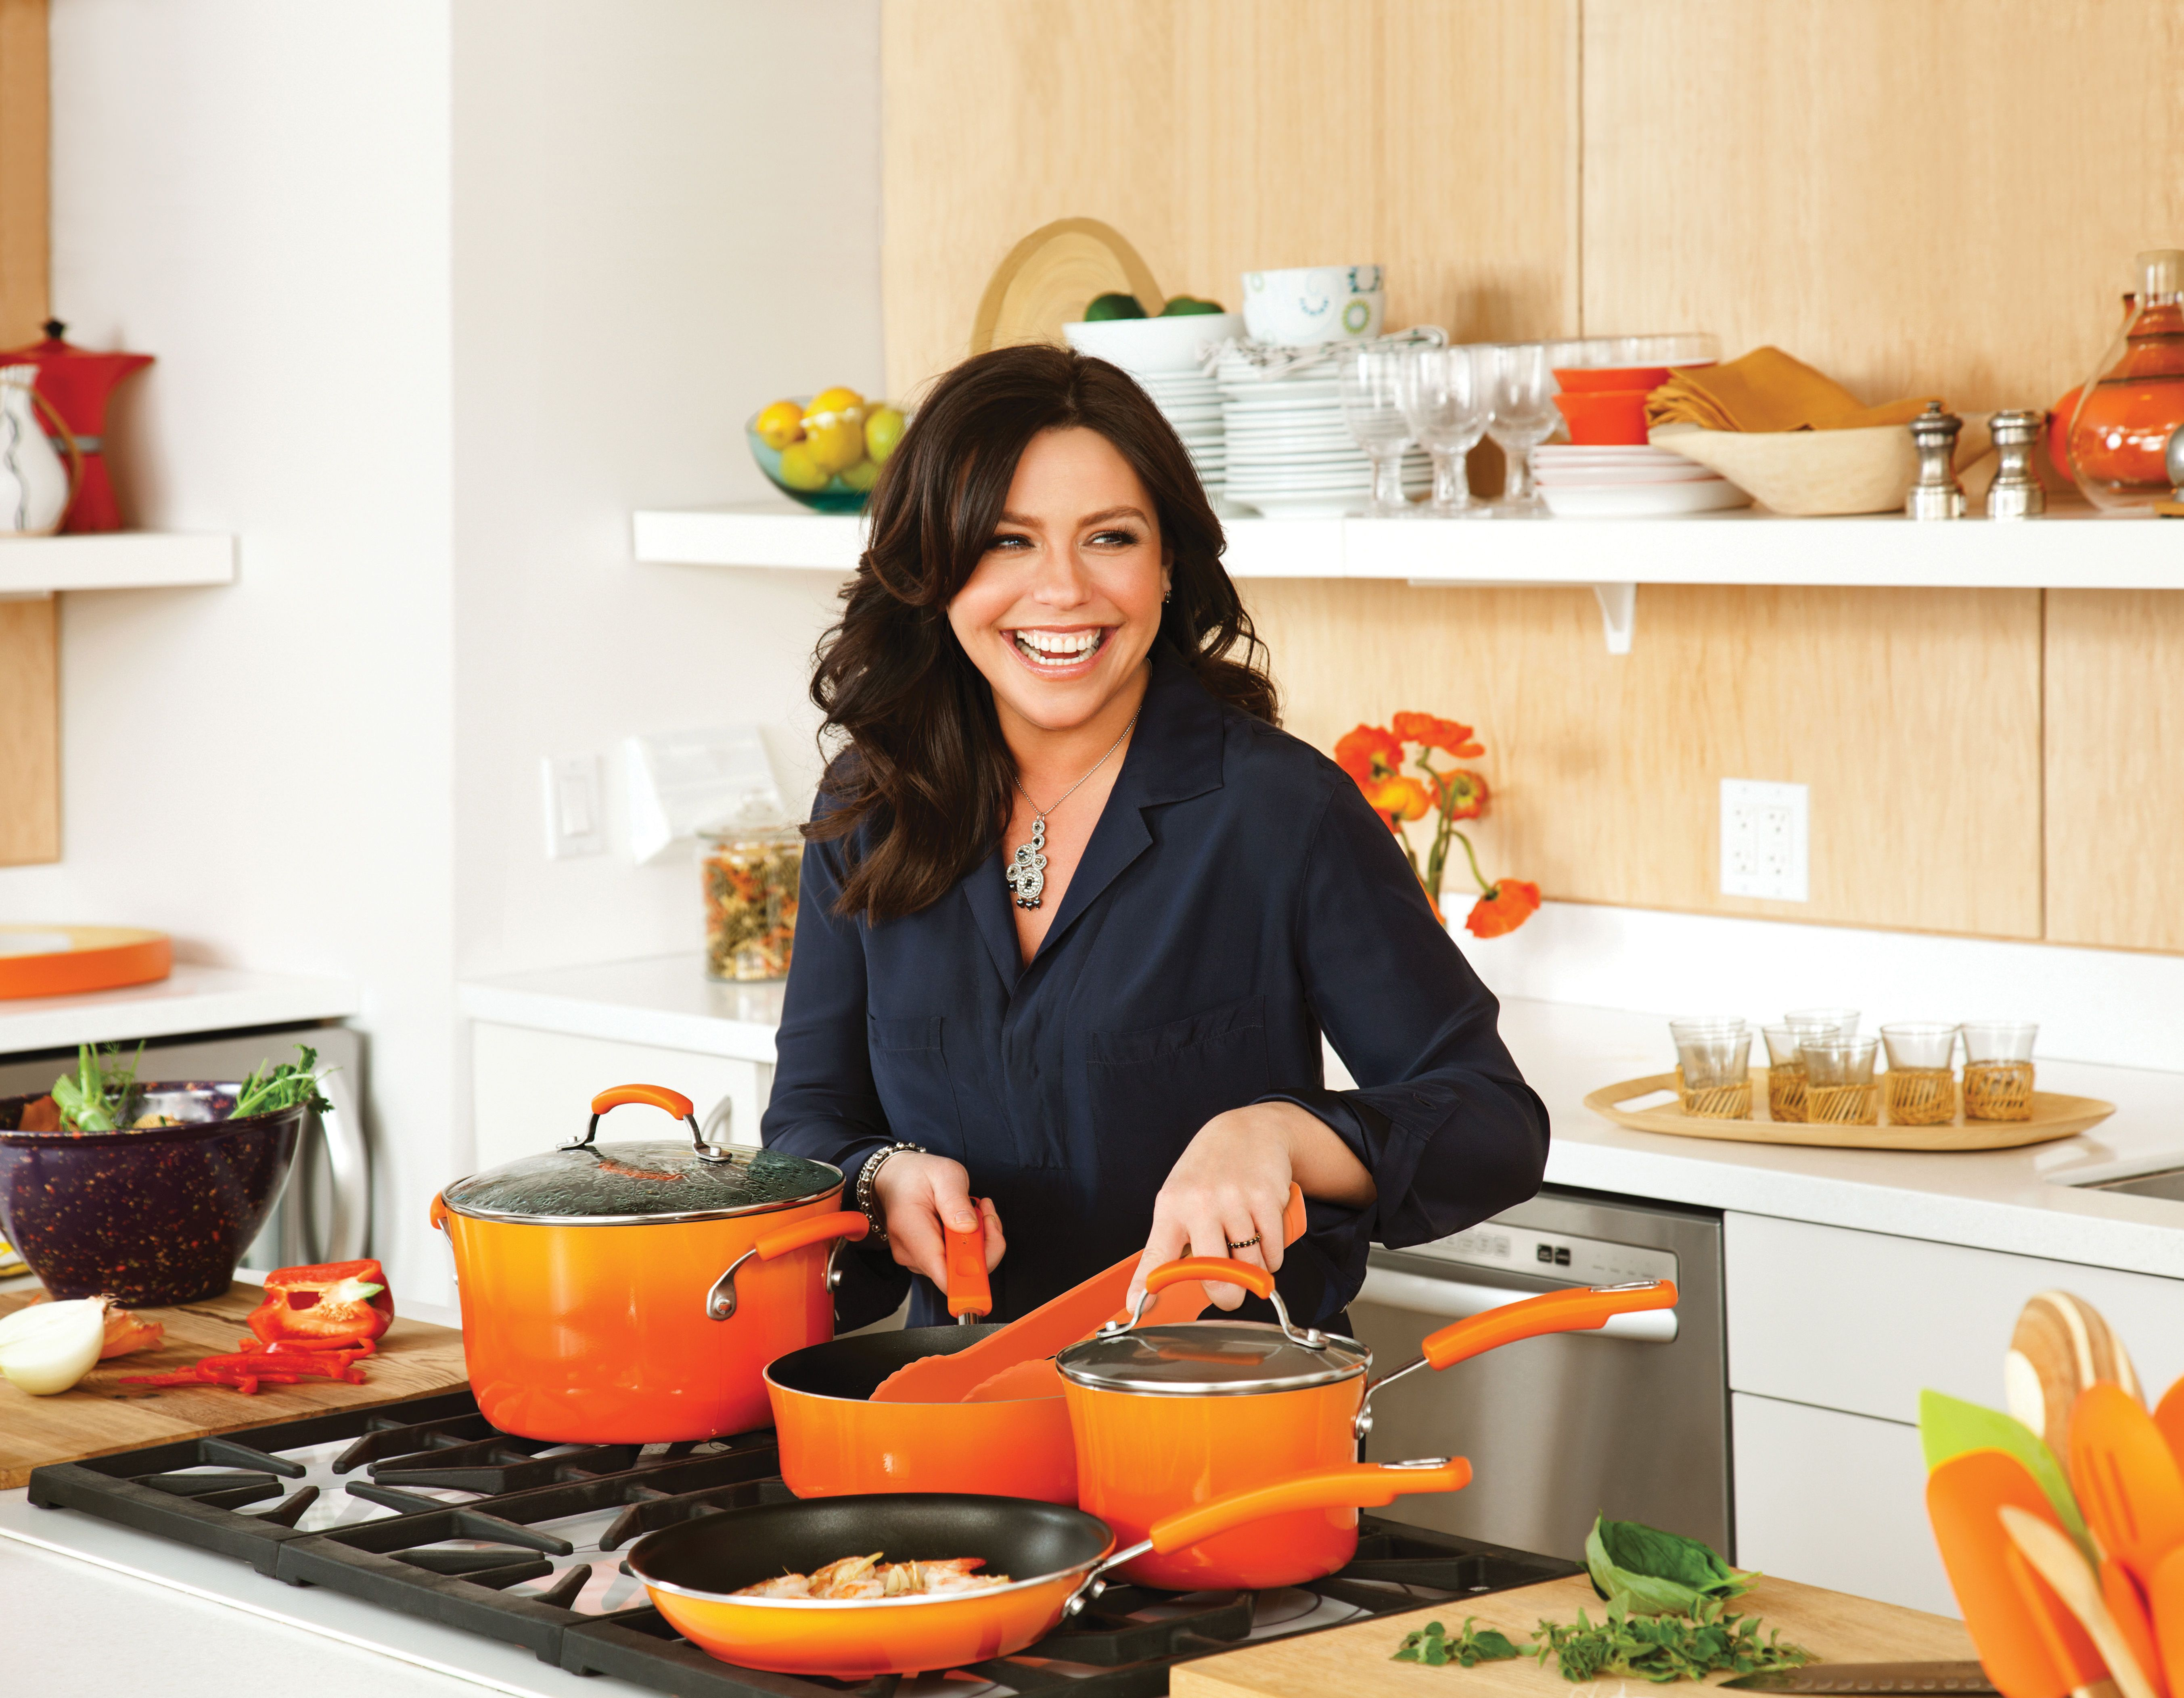 Contact Us Cookware Set Food Network Recipes Rachel Ray